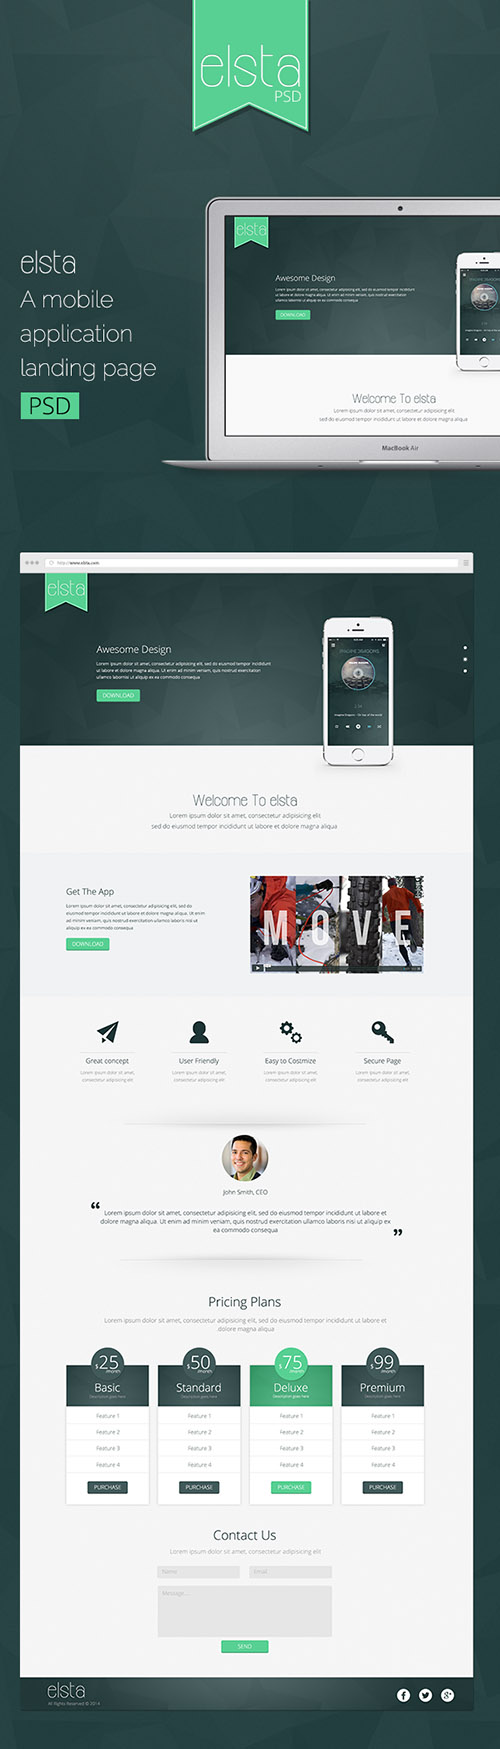 psd web template elsta mobile application landing page heroturko download. Black Bedroom Furniture Sets. Home Design Ideas